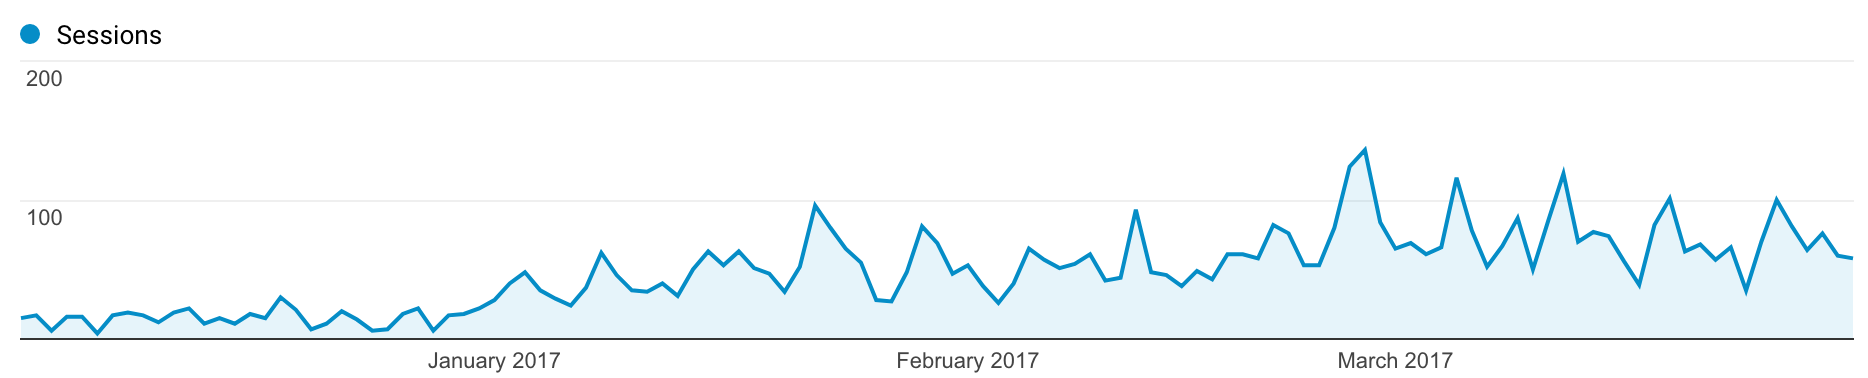 Traffic & Income Q1 2017 - Follow Project Meal Plan's traffic, income, and thoughts on January-March 2017 and the progress of the blog as a whole!